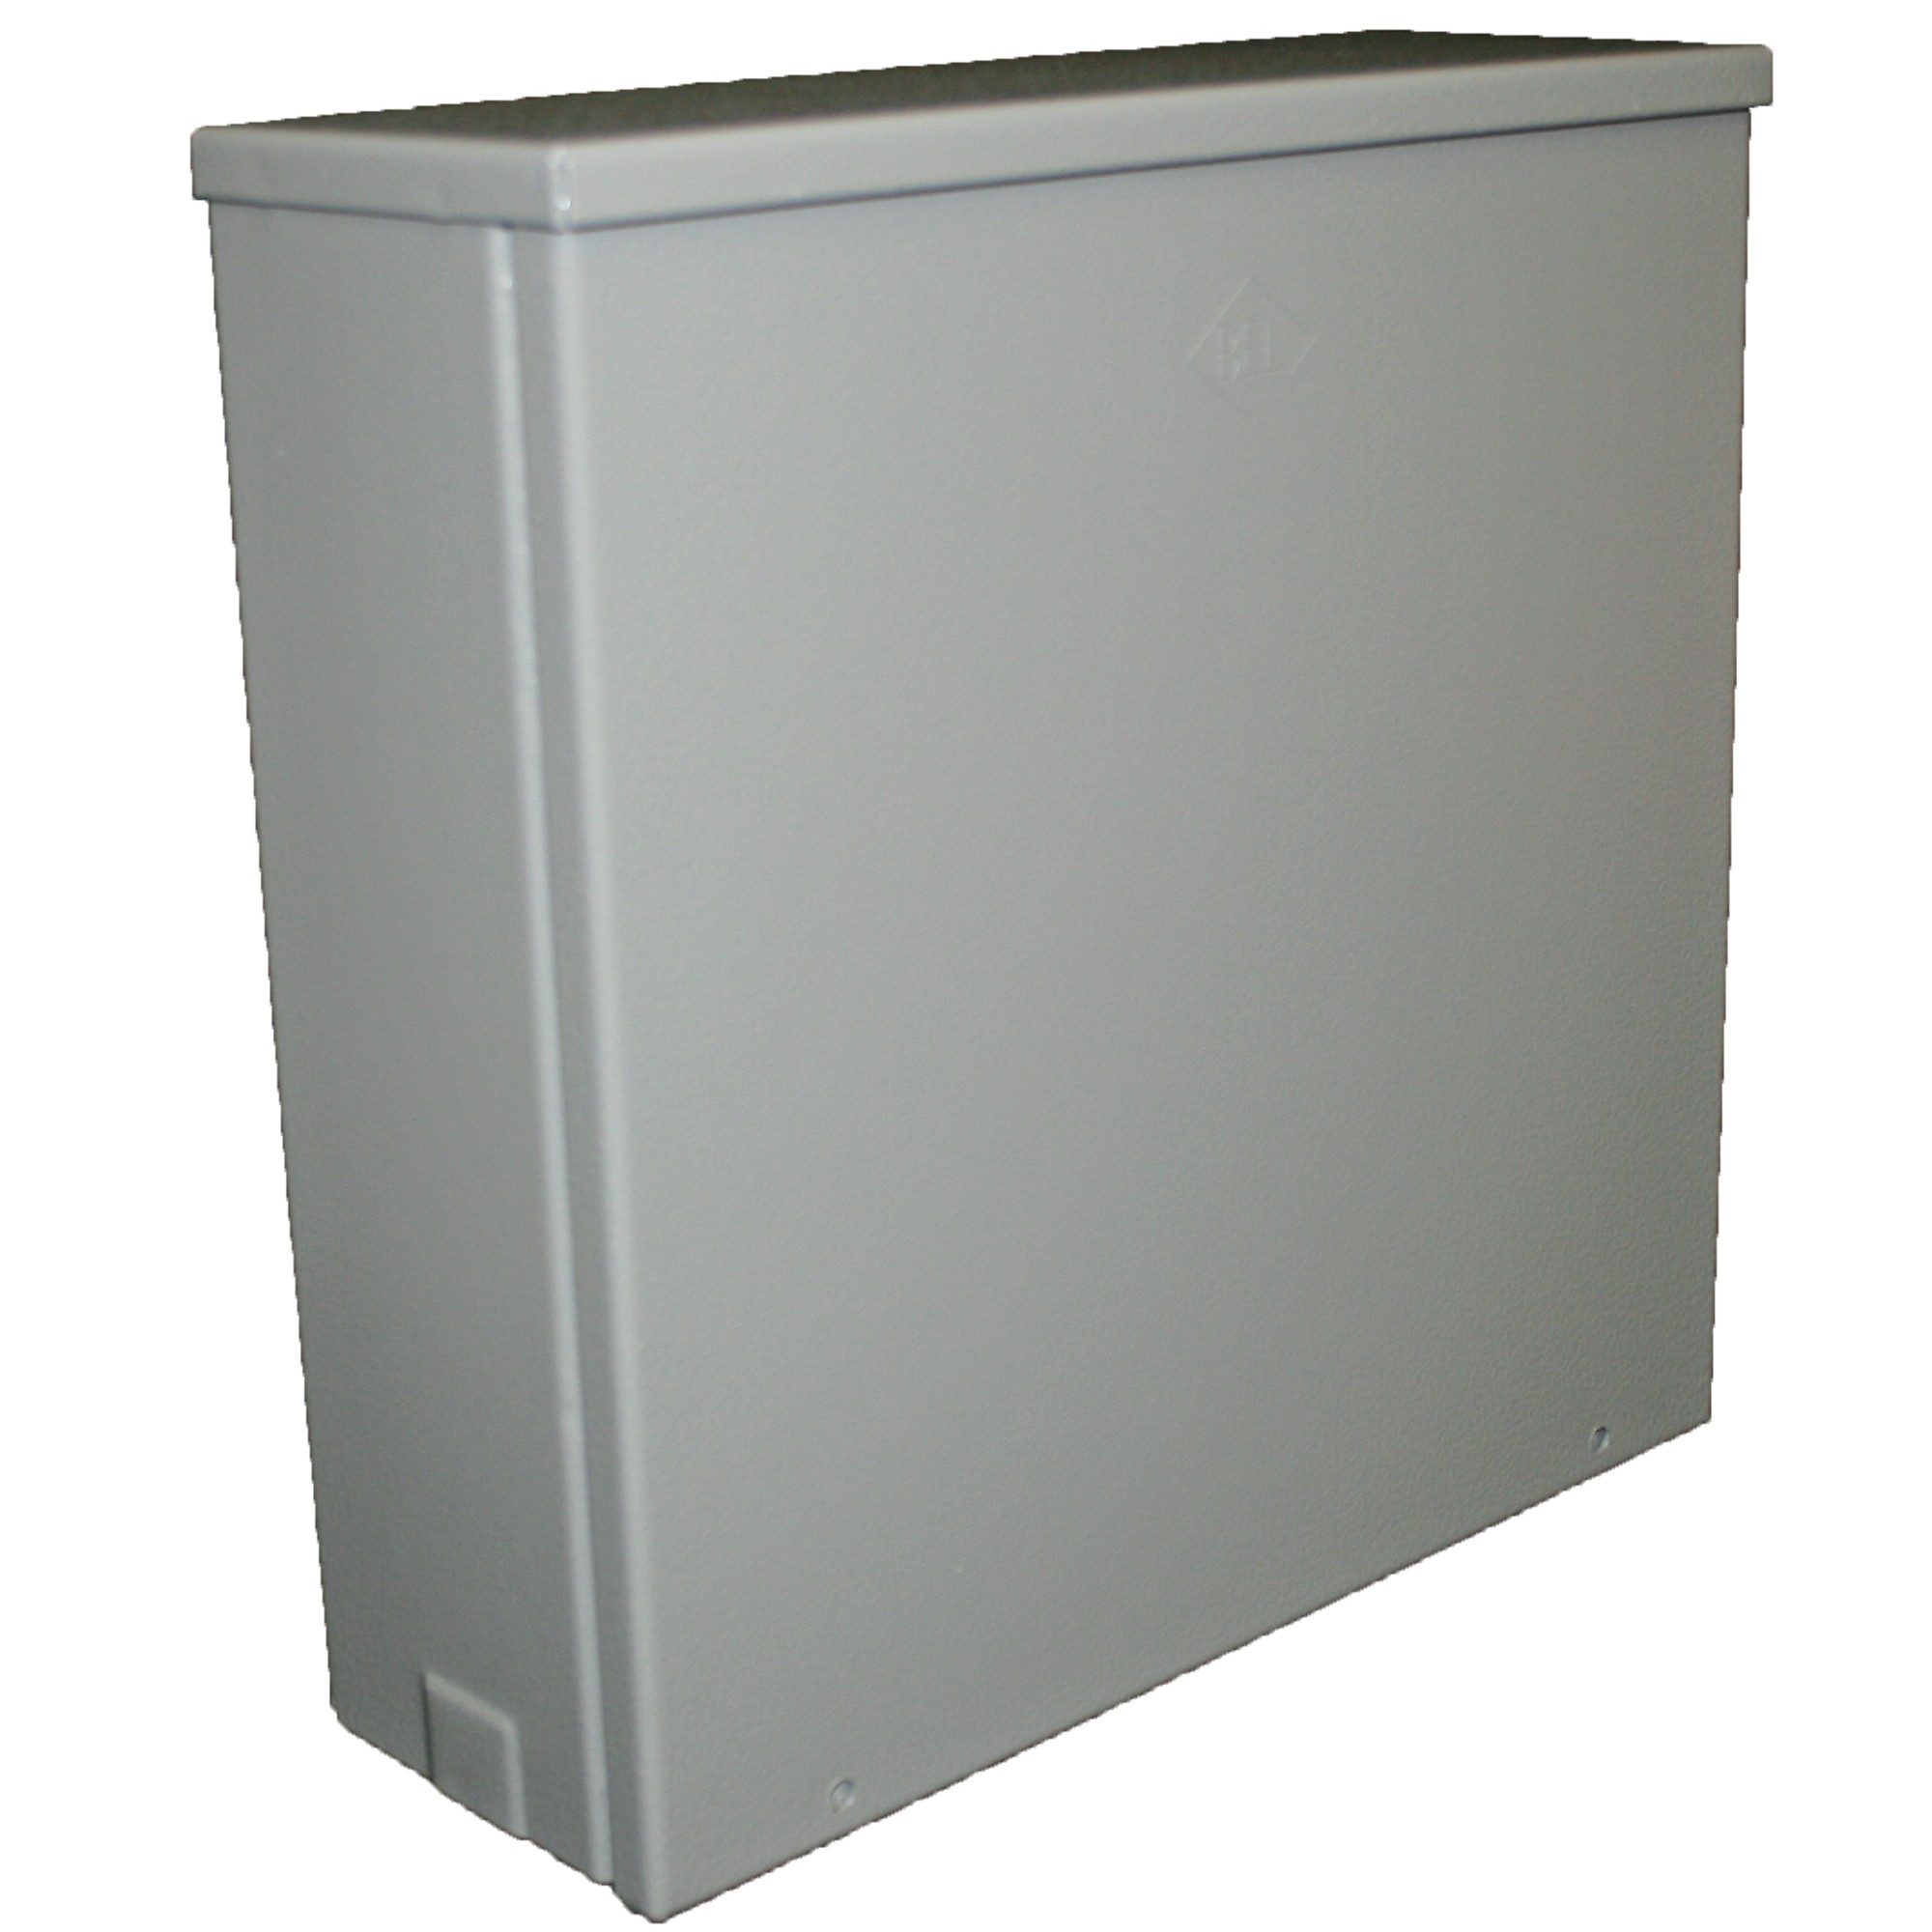 Weather Proof Electrical Enclosure NEMA 3R 12x12x6